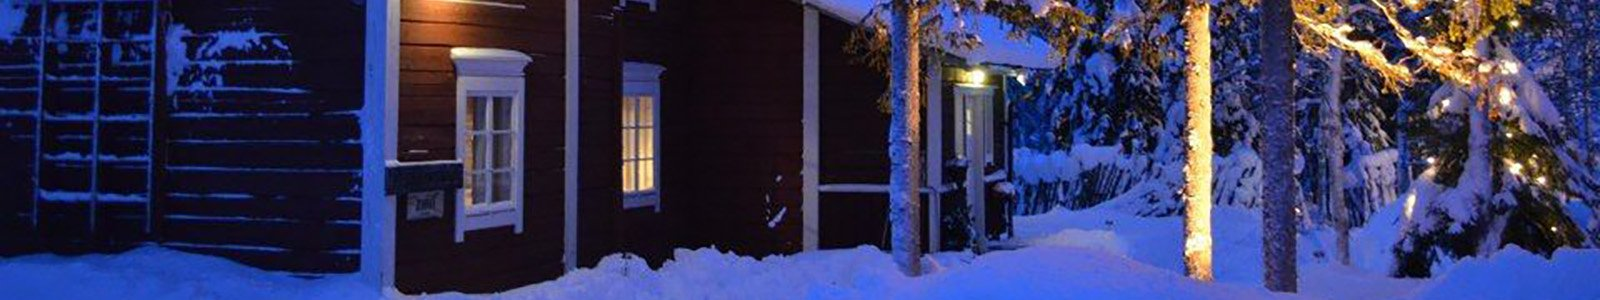 lapland-lodges-papin-talo-header